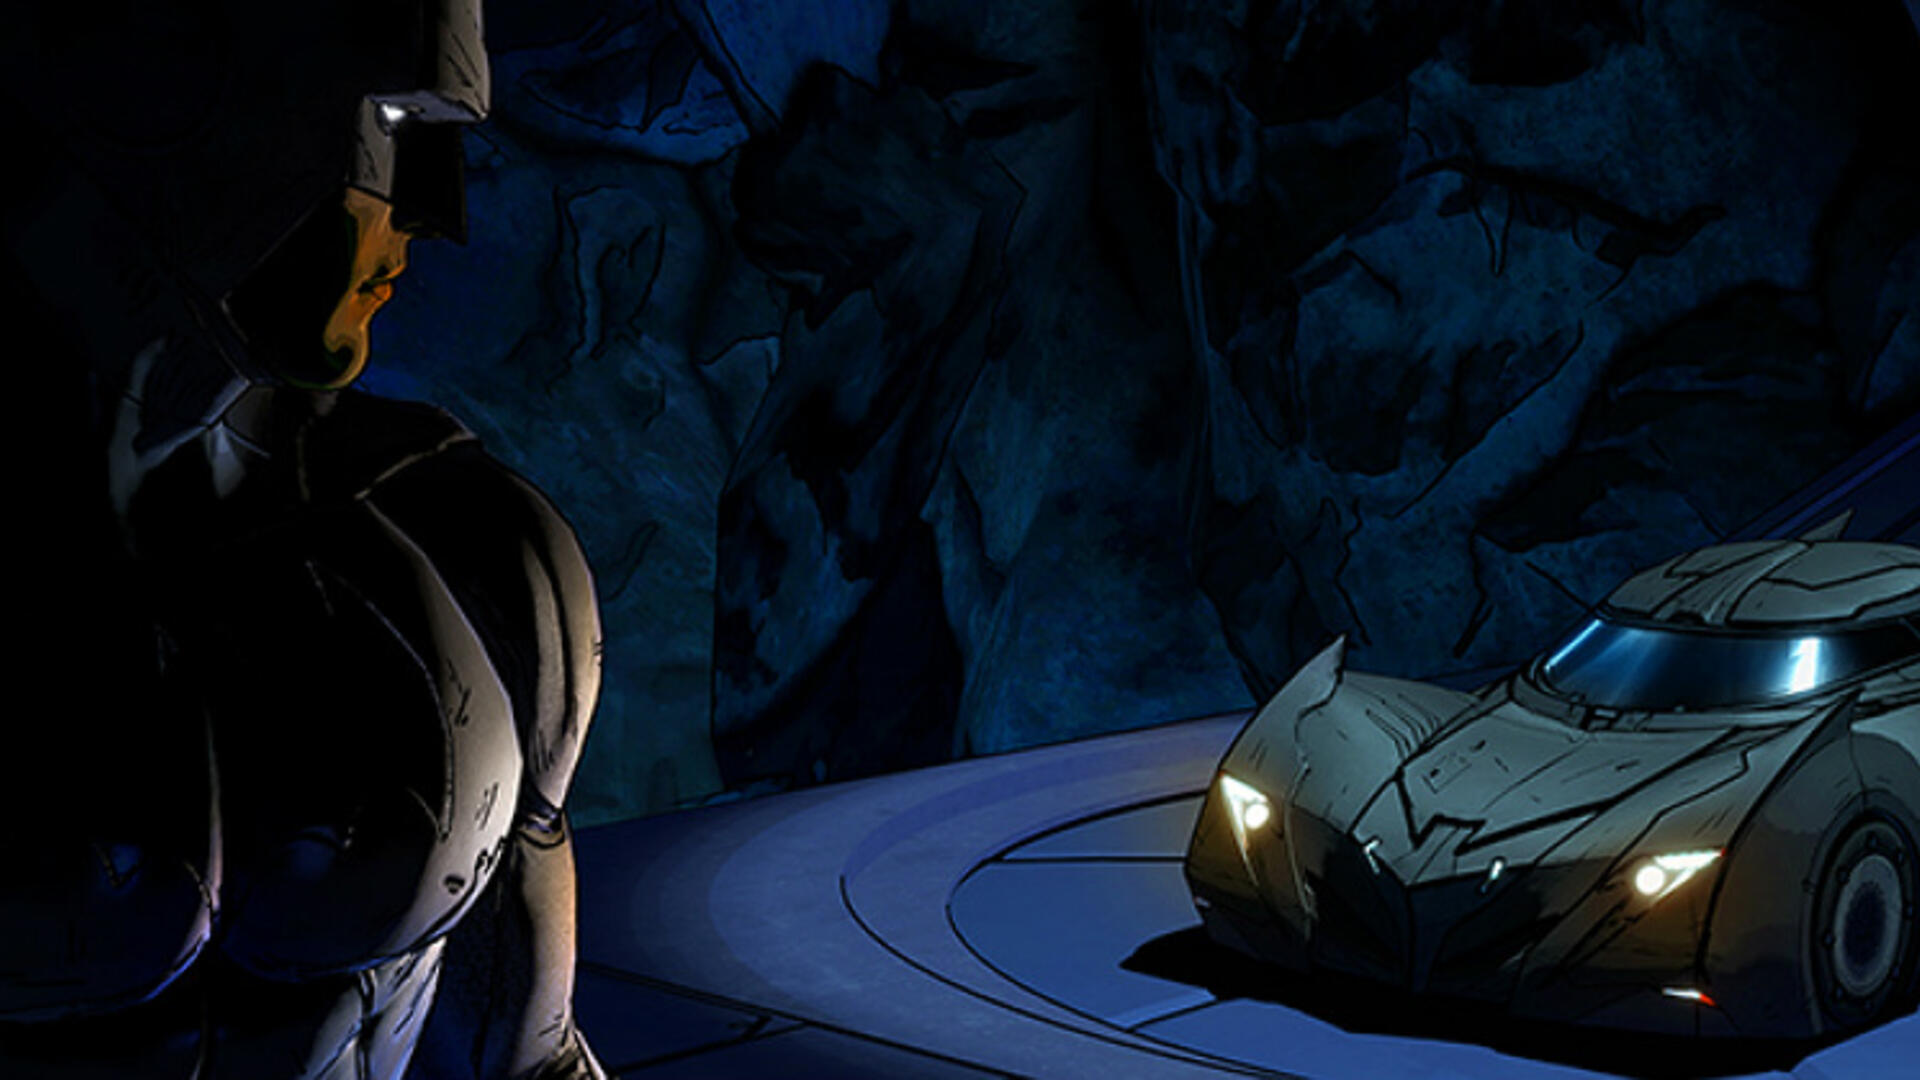 Twitch Plays The Dark Knight: Crowd Play Coming to Batman: The Telltale Series